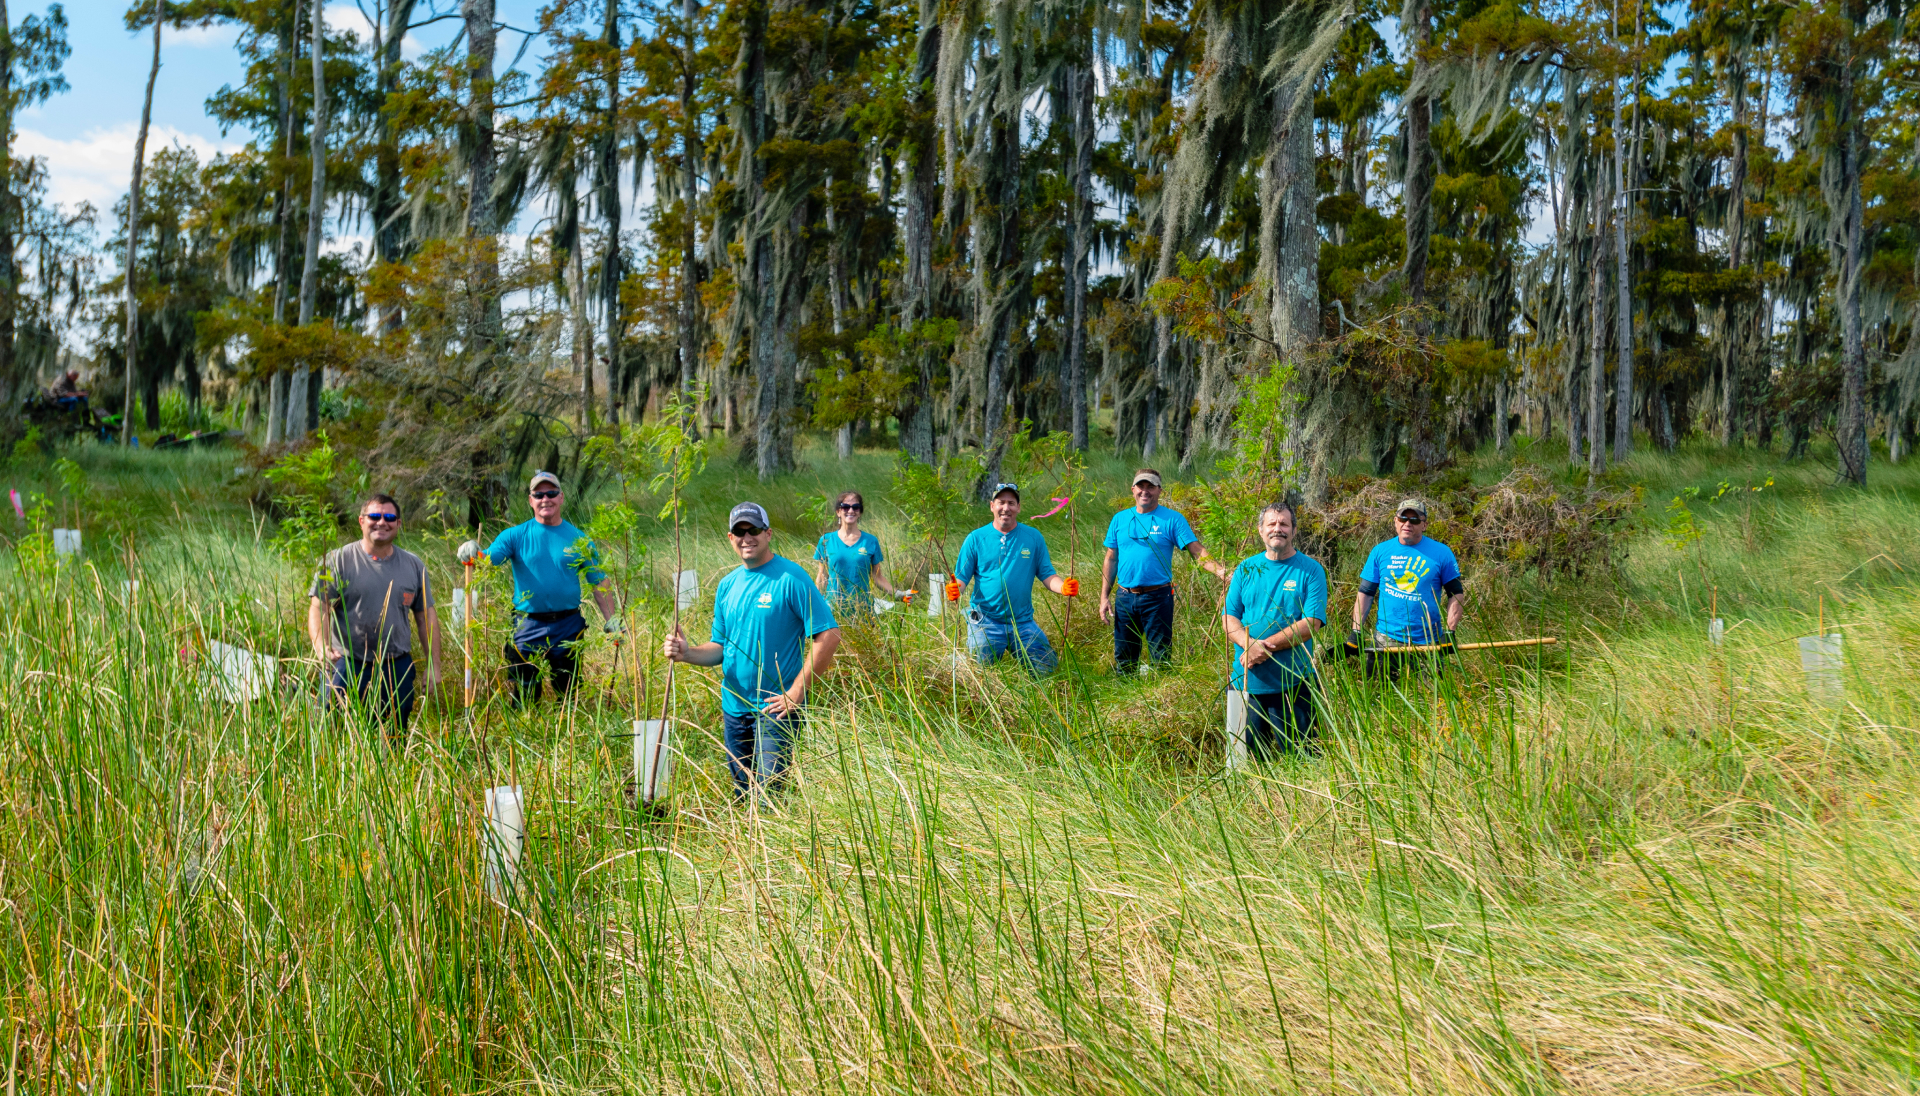 Valero employees host clean up days for their communities and surrounding areas.